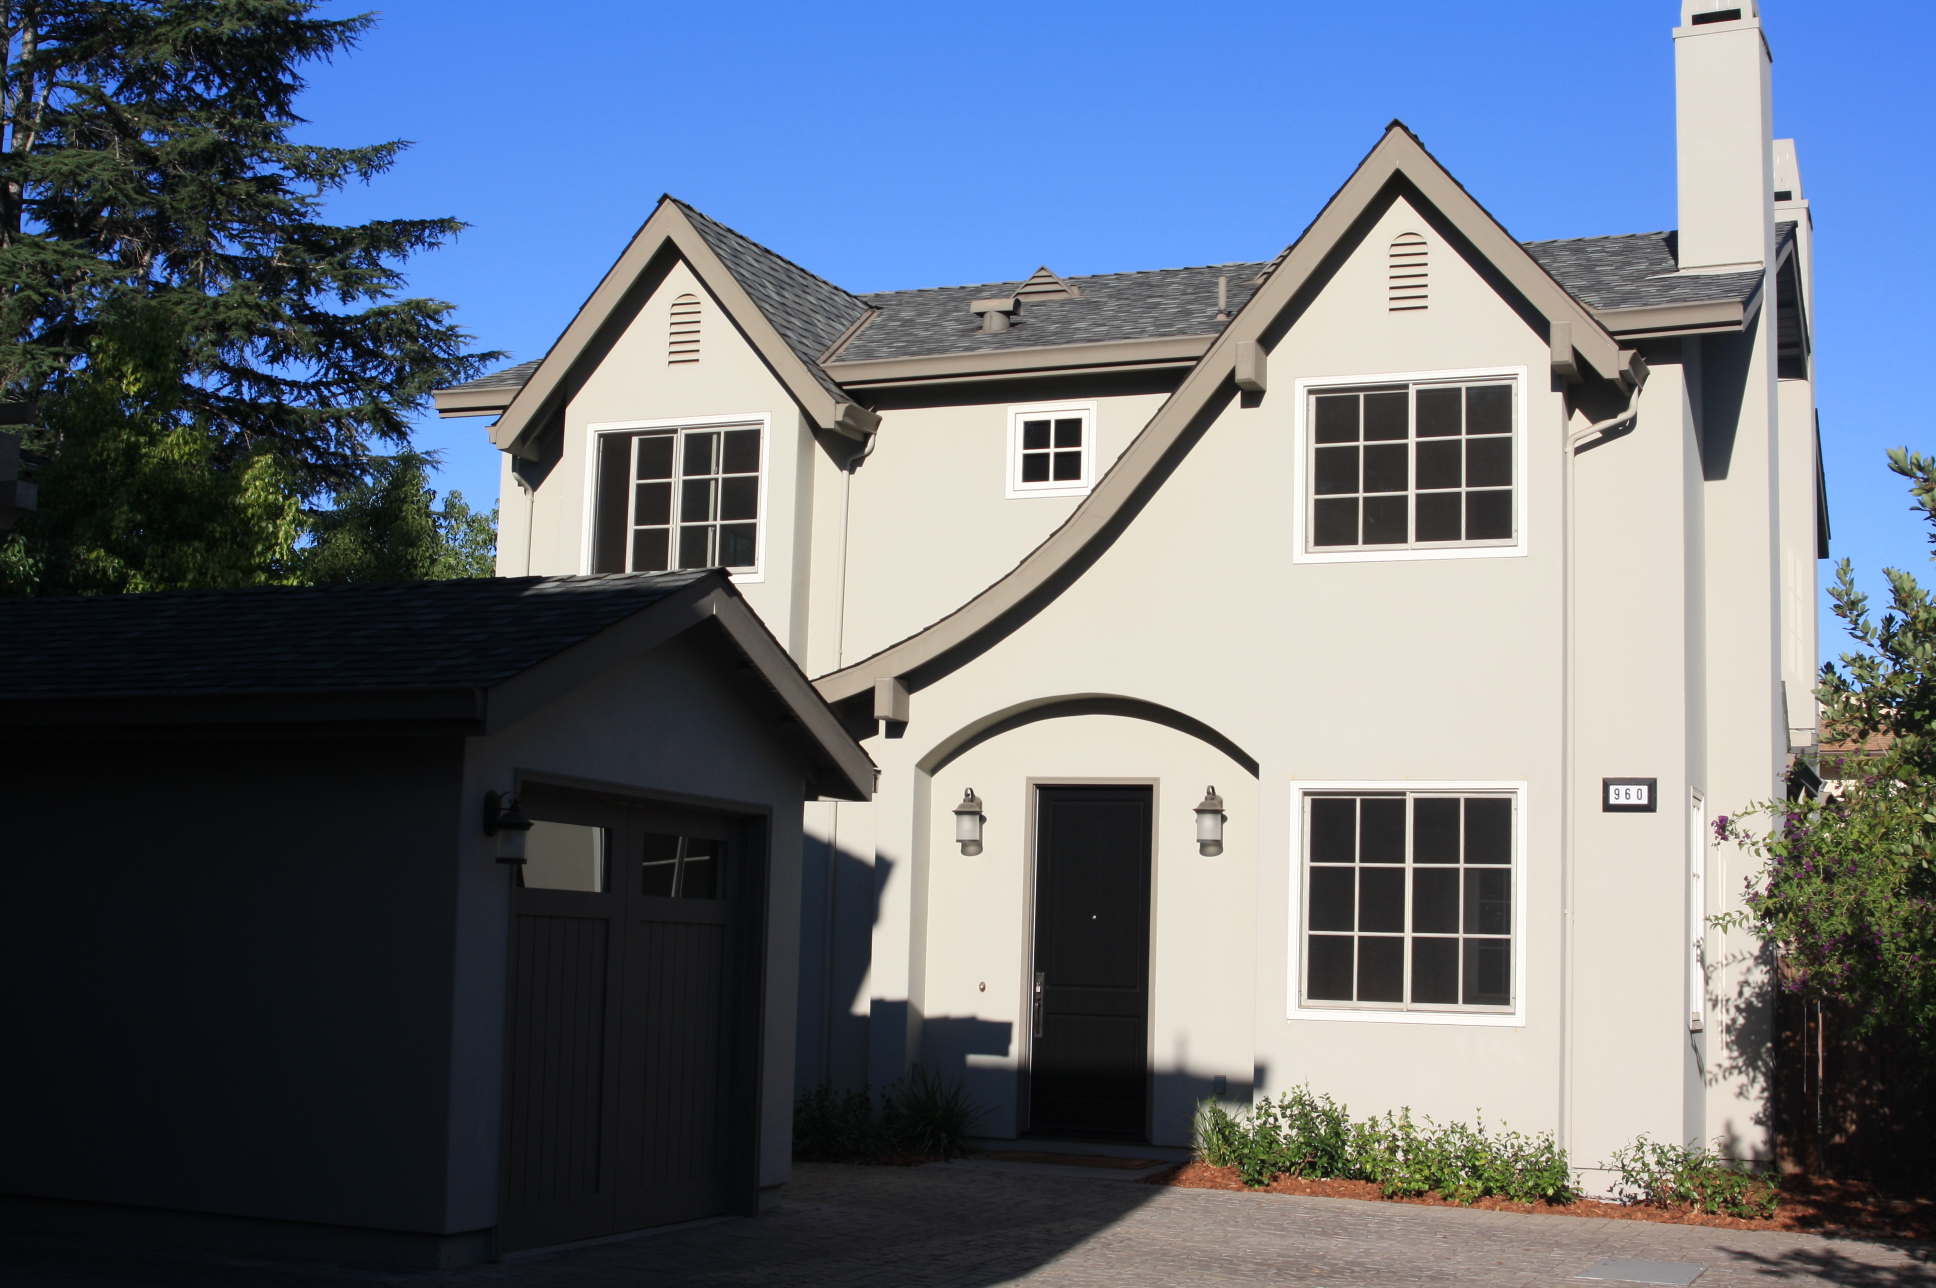 960 Middle Ave, Menlo Park l $2,375,000